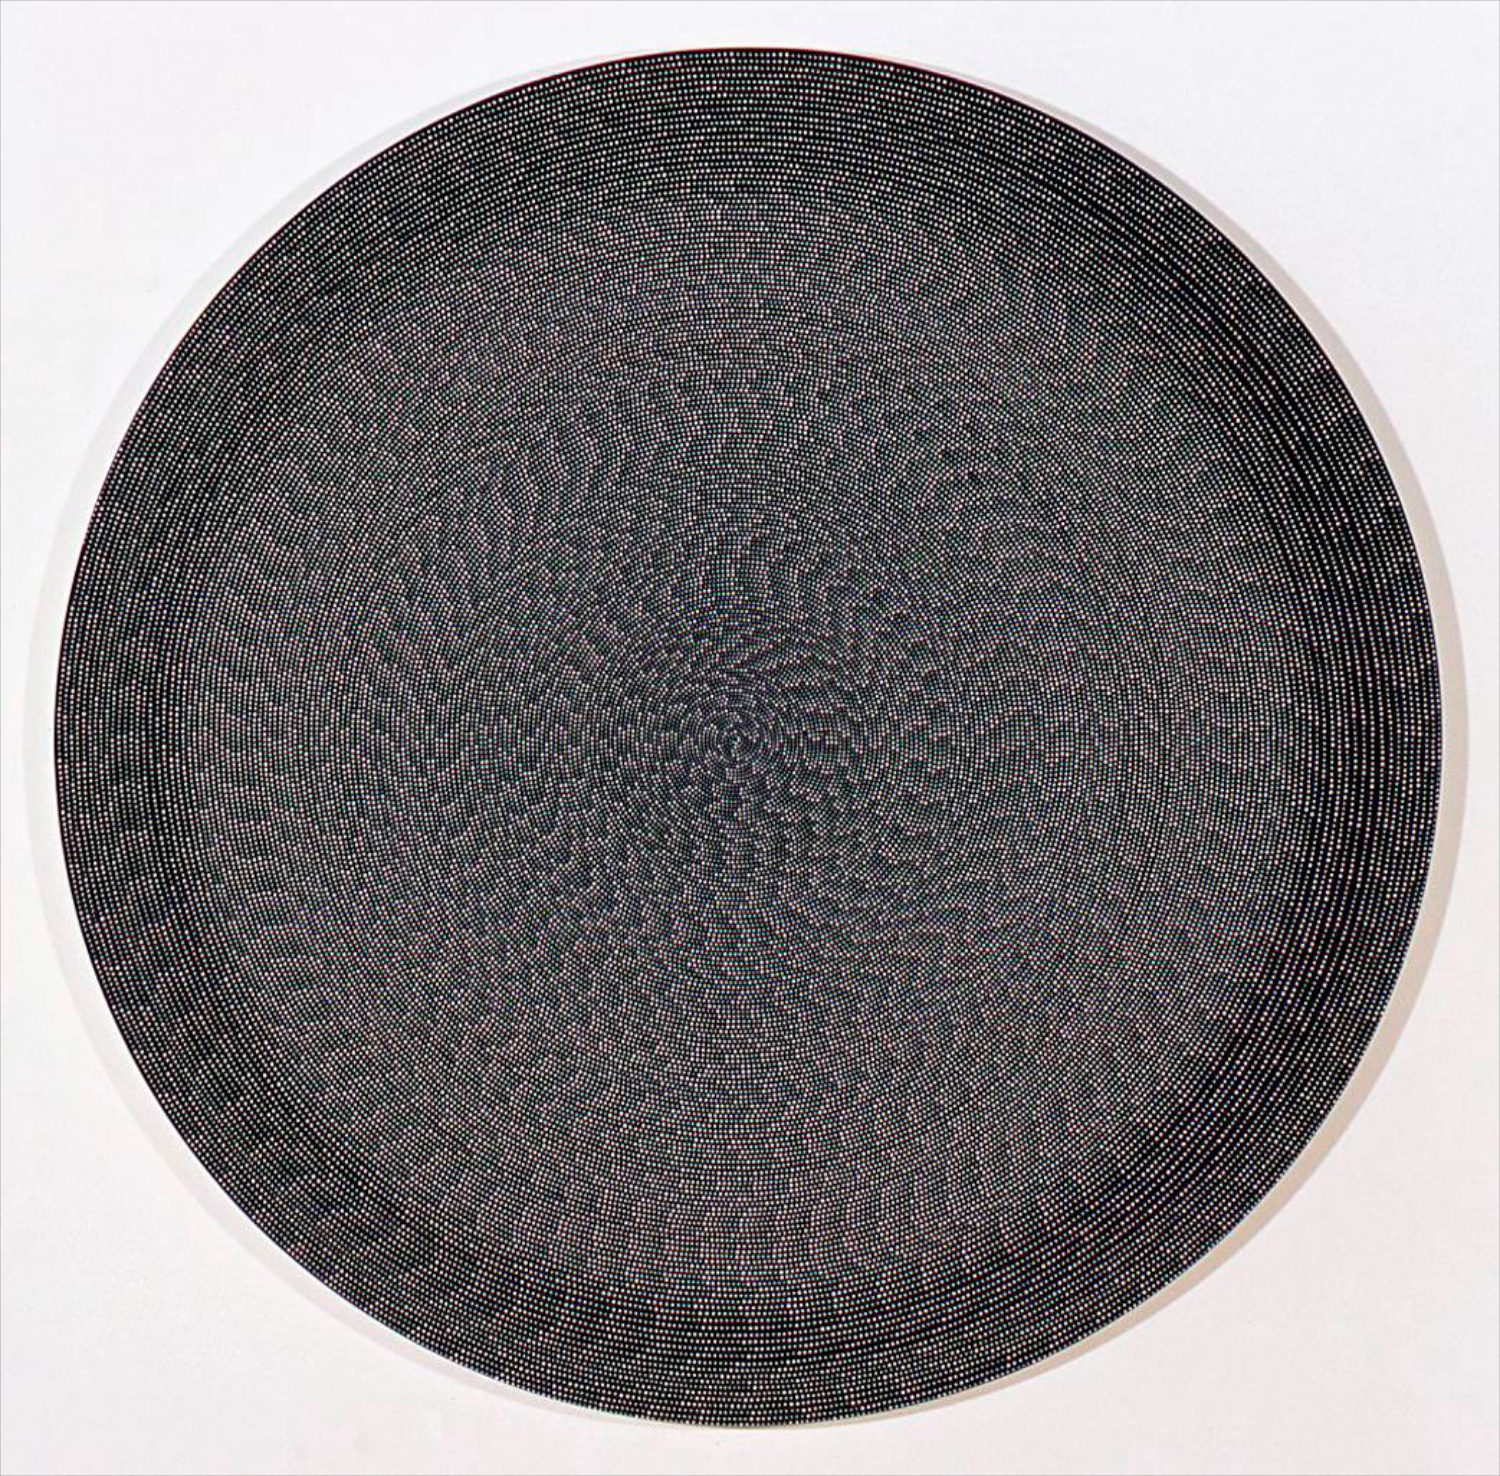 "Michelle Grabner Untitled 2006 Flashe on canvas 60"" diameter MGrab021"